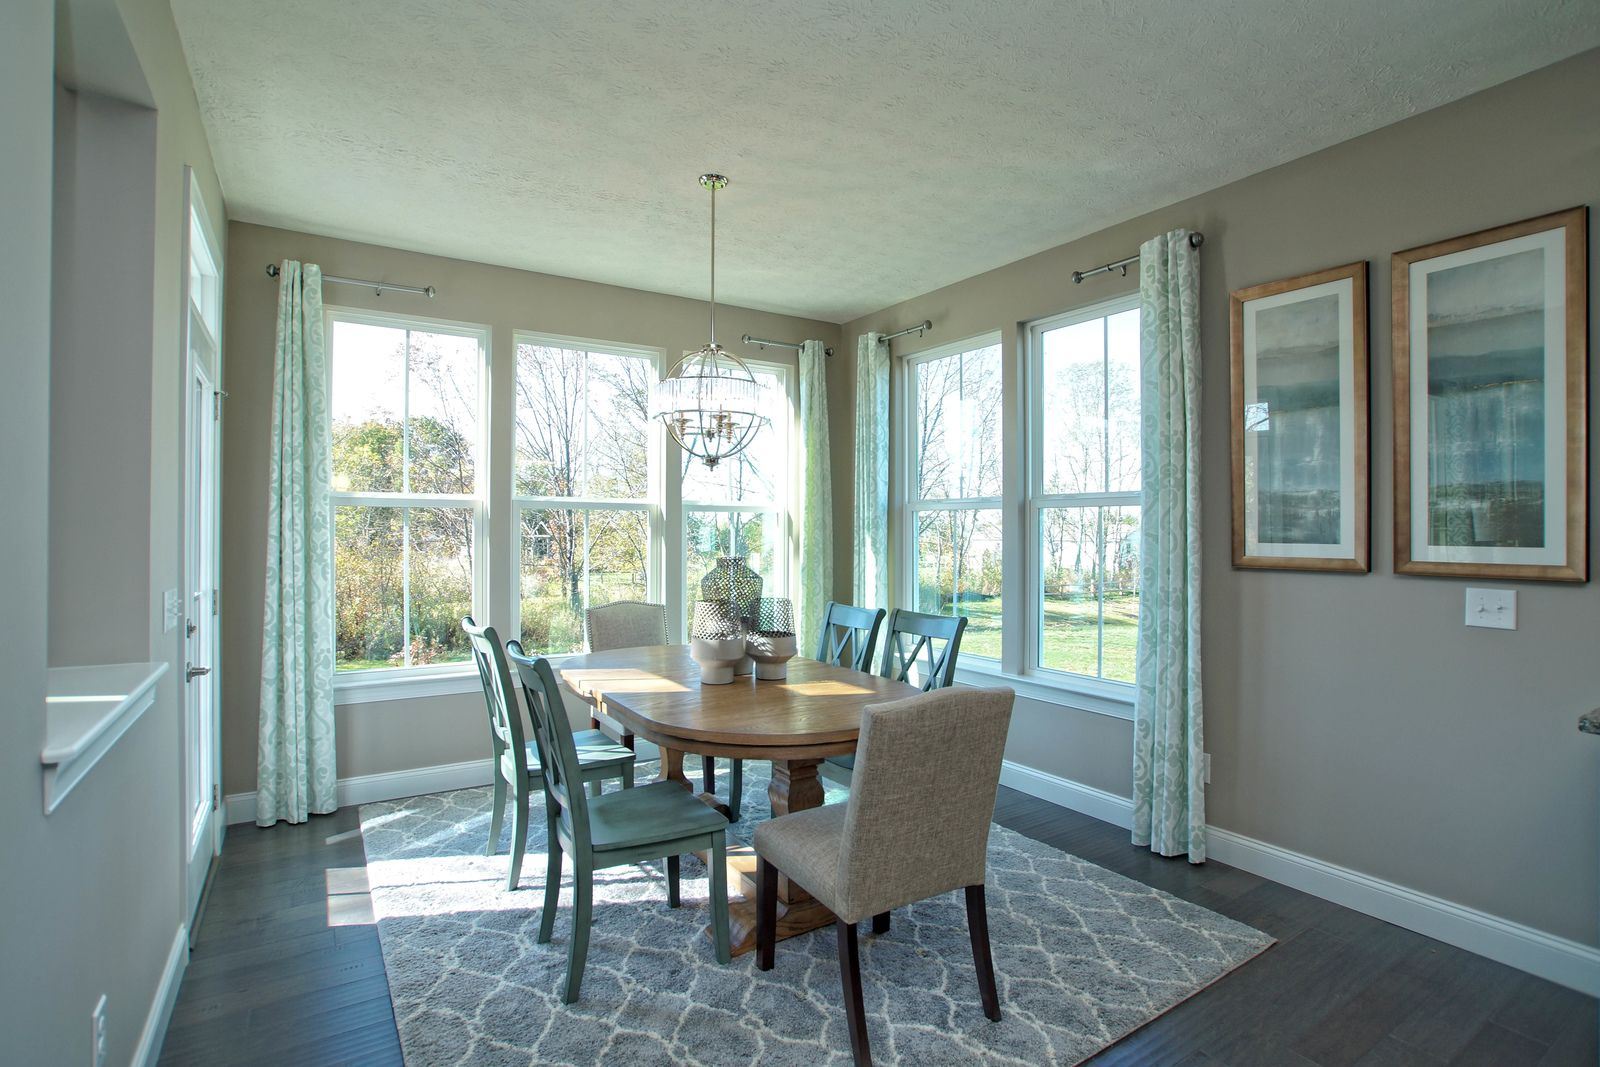 Breakfast-Room-in-Esquire Place-at-Kallay Farms-in-Painesville